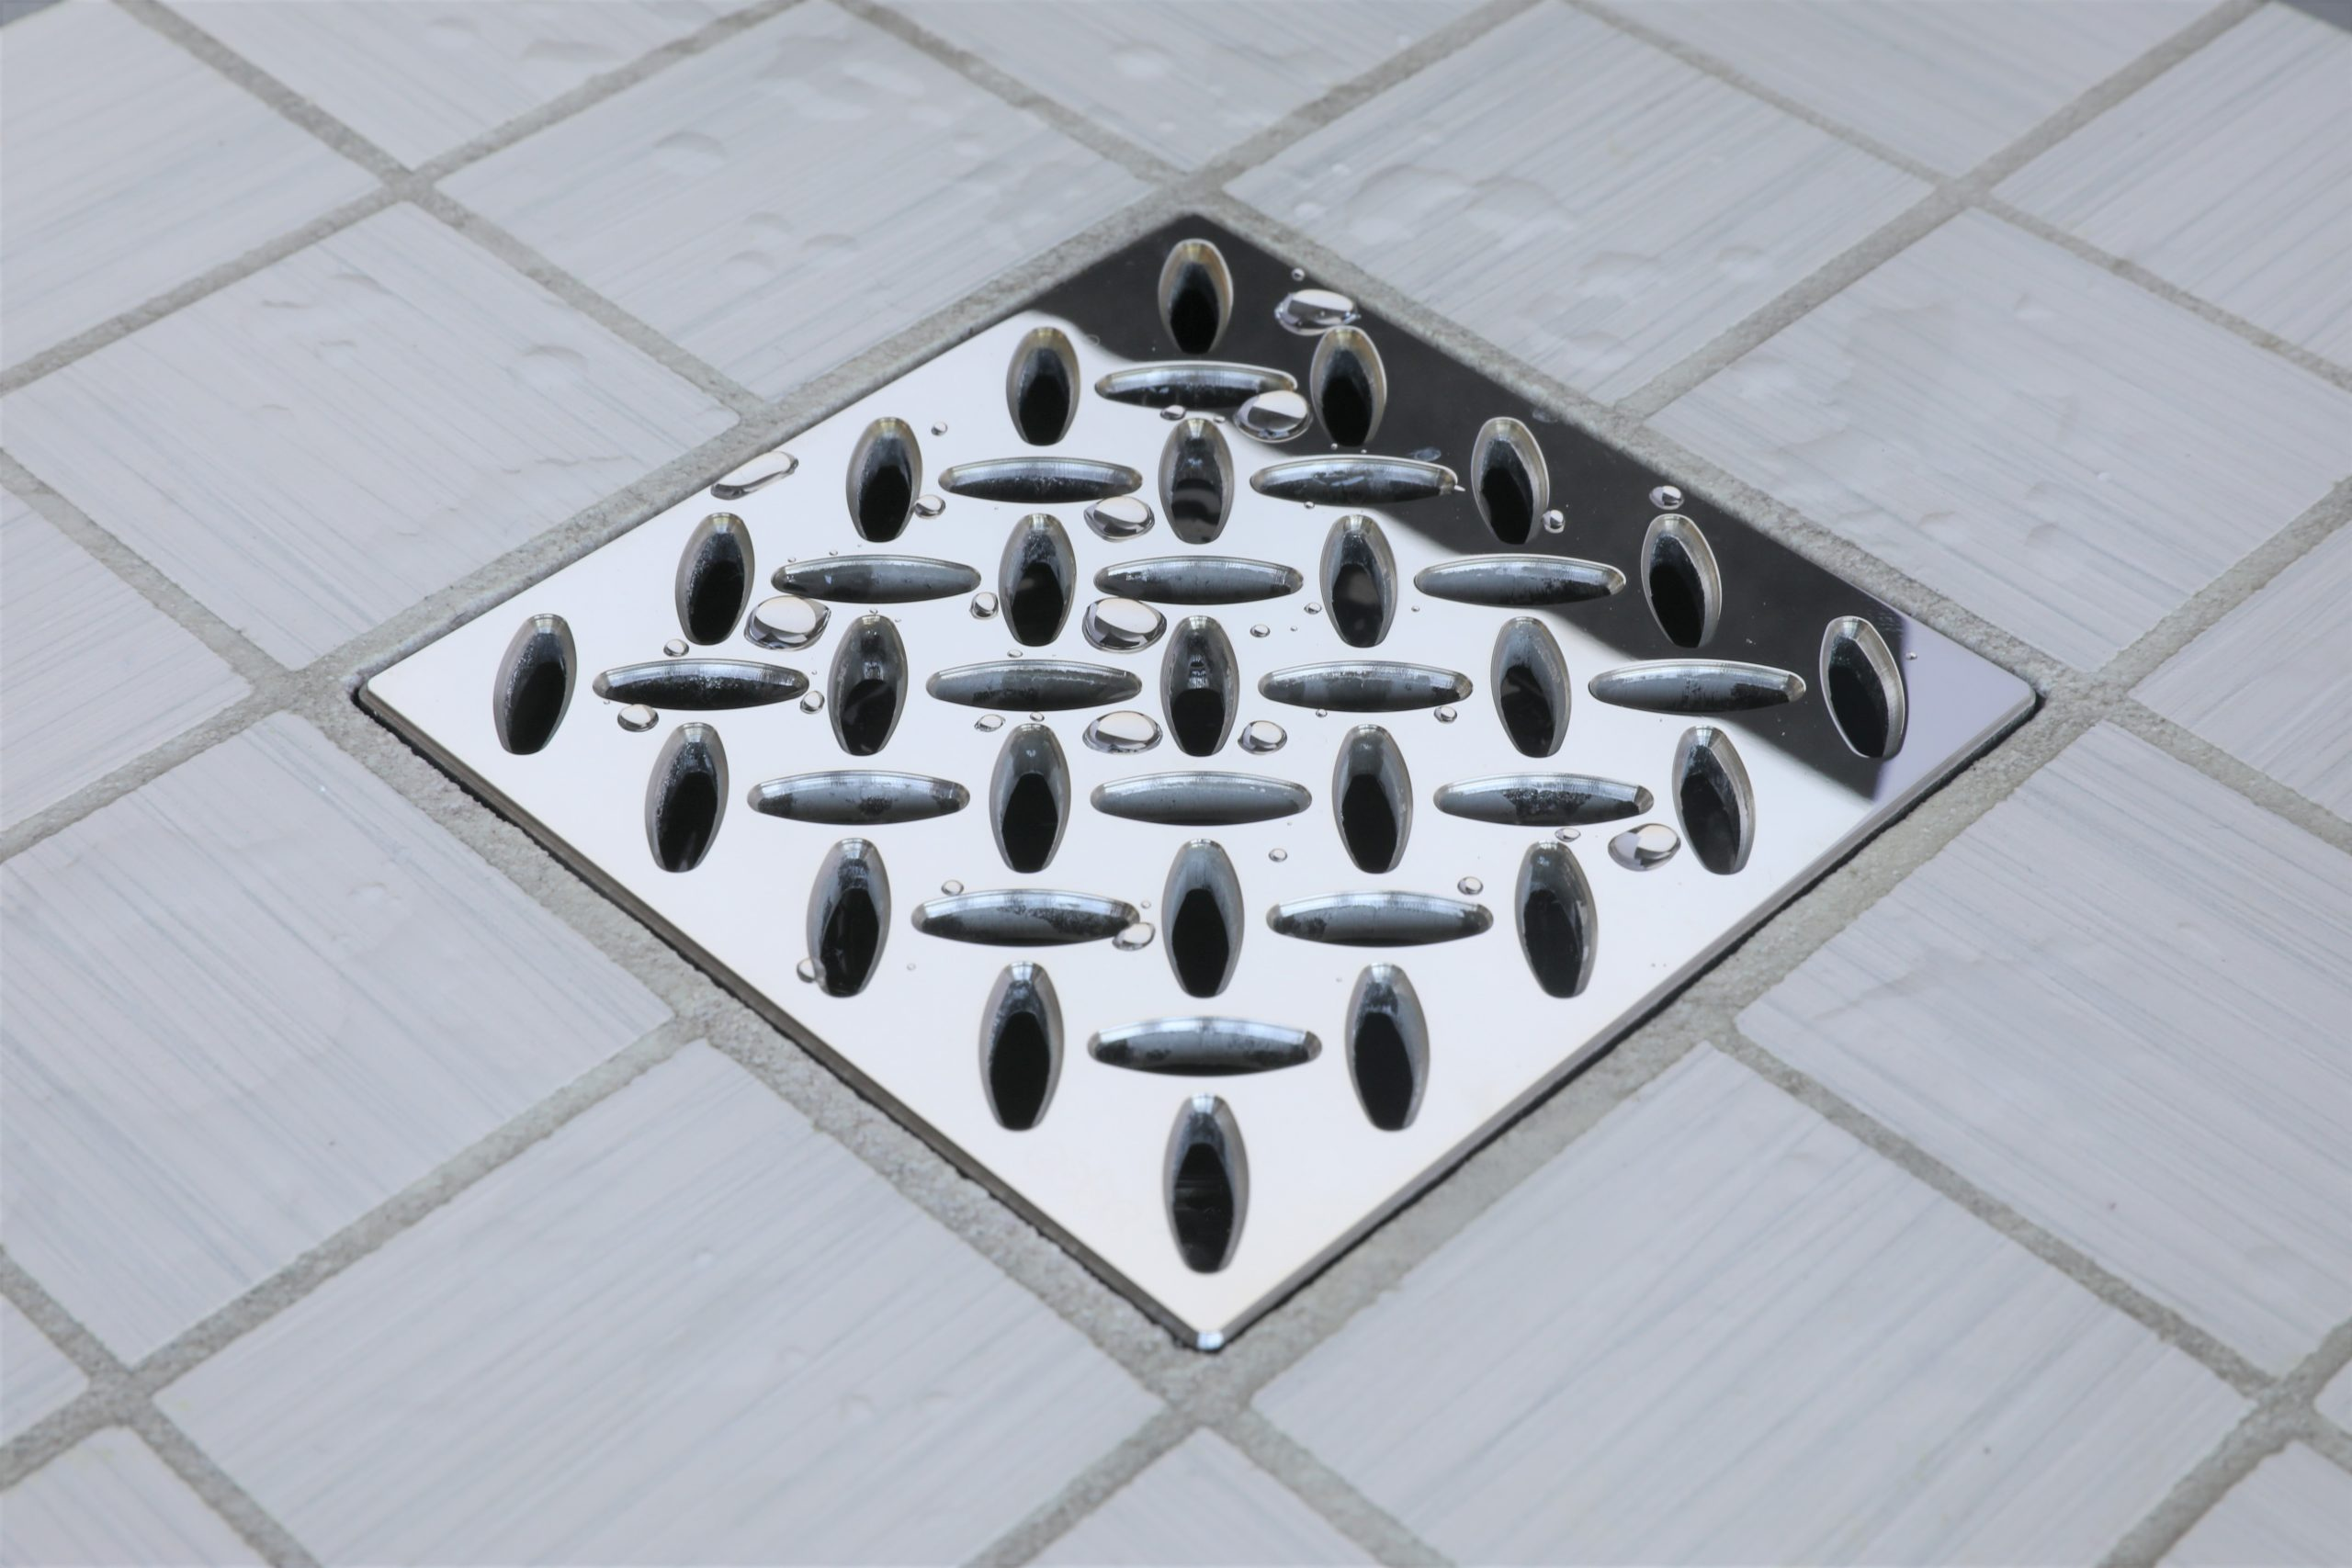 E4813-PS - Ebbe UNIQUE Drain Cover - DIAMOND - Polished Stainless Steel - Shower Drain - e